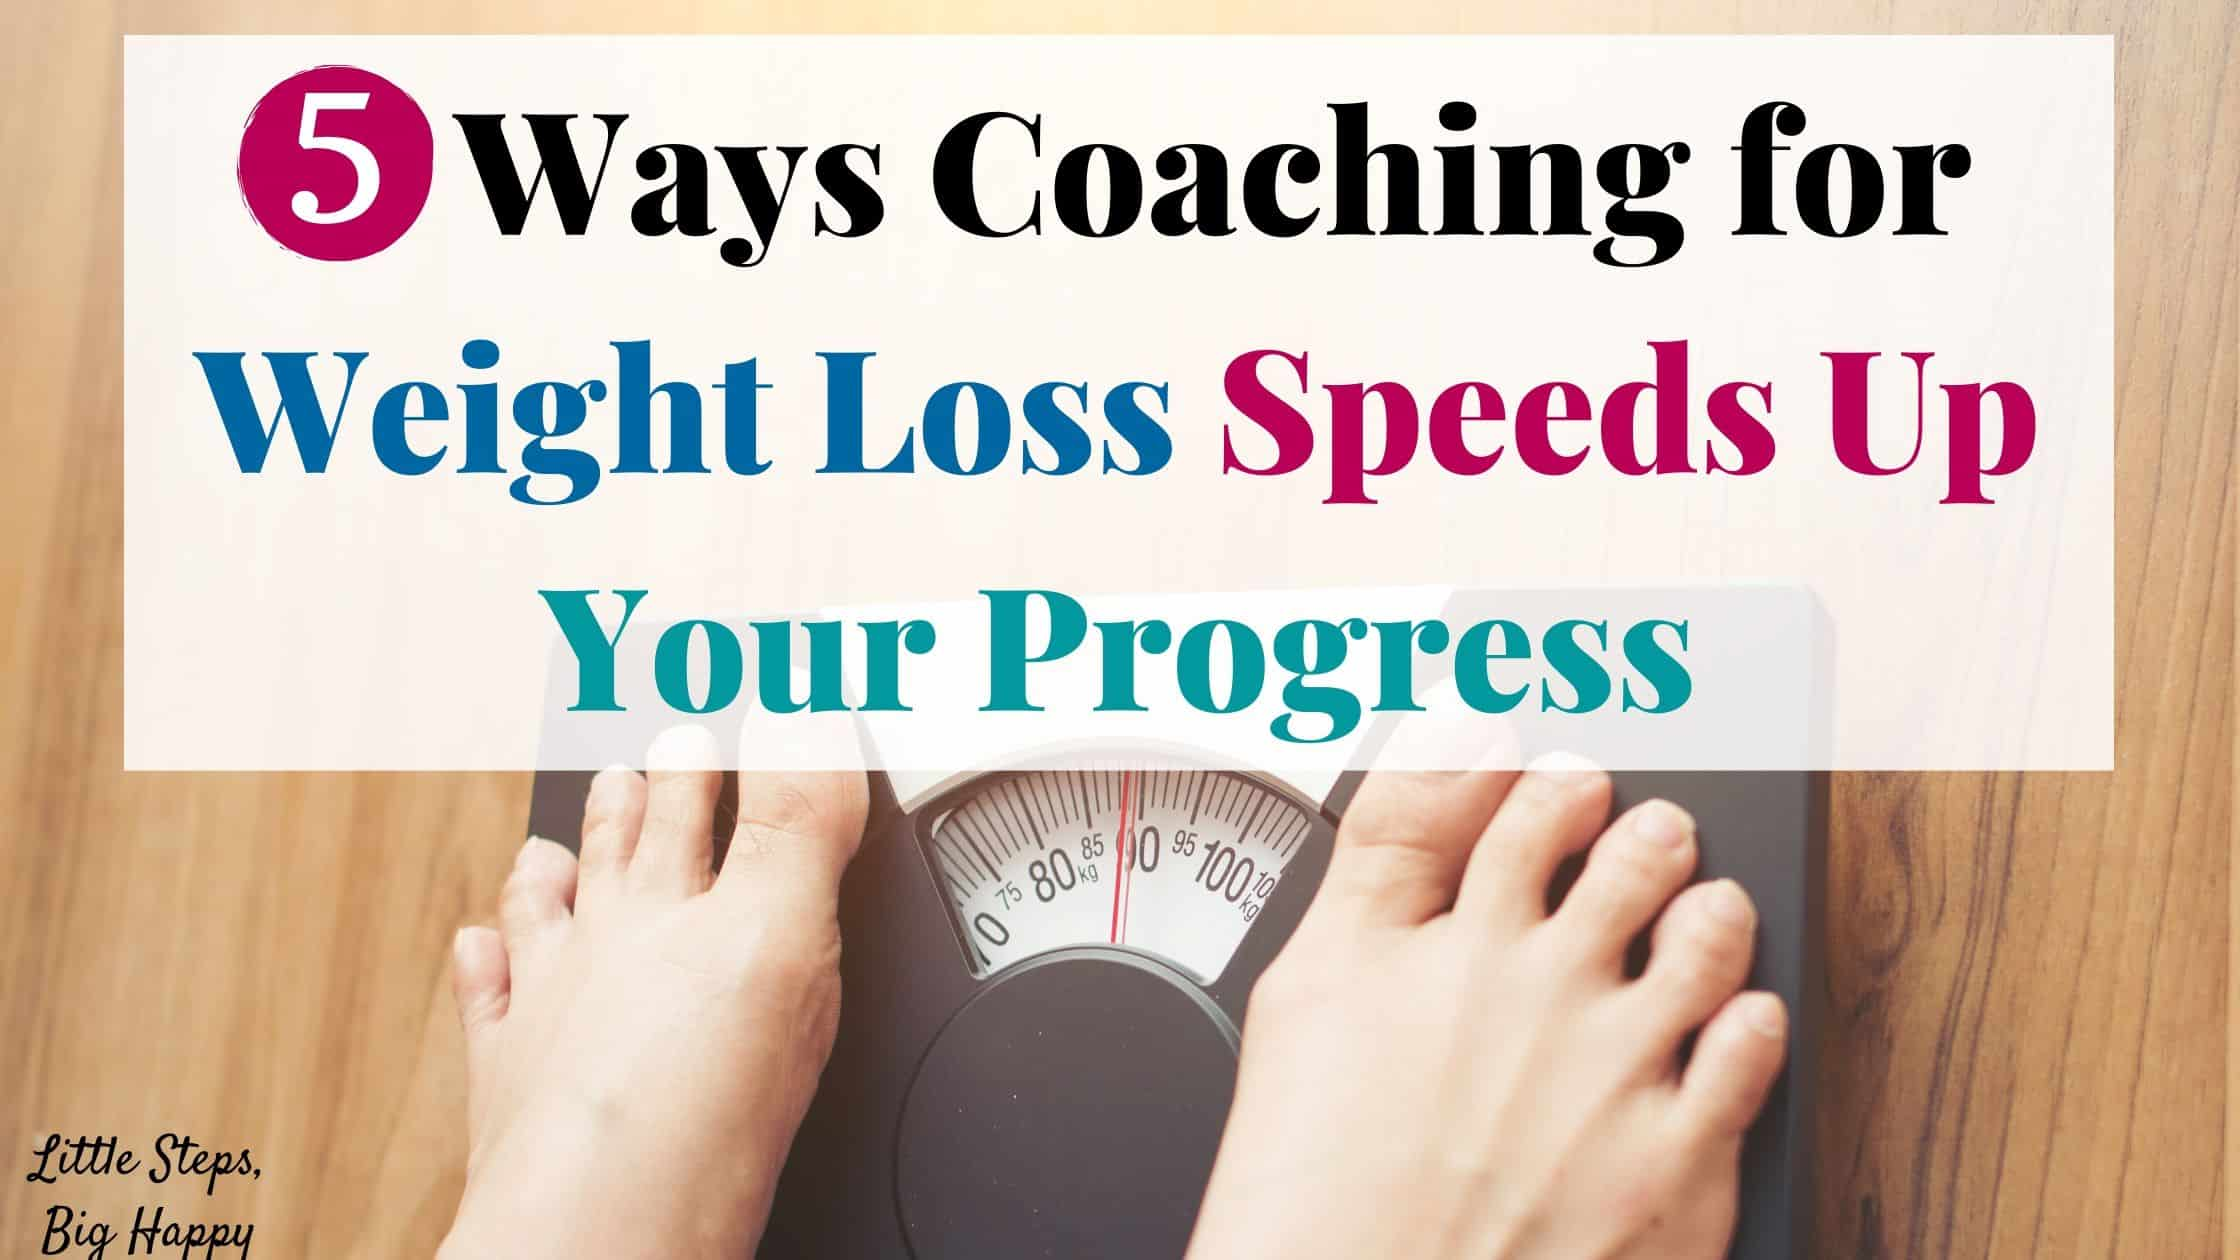 5 Ways Coaching for Weight Loss Speeds Up Your Progress